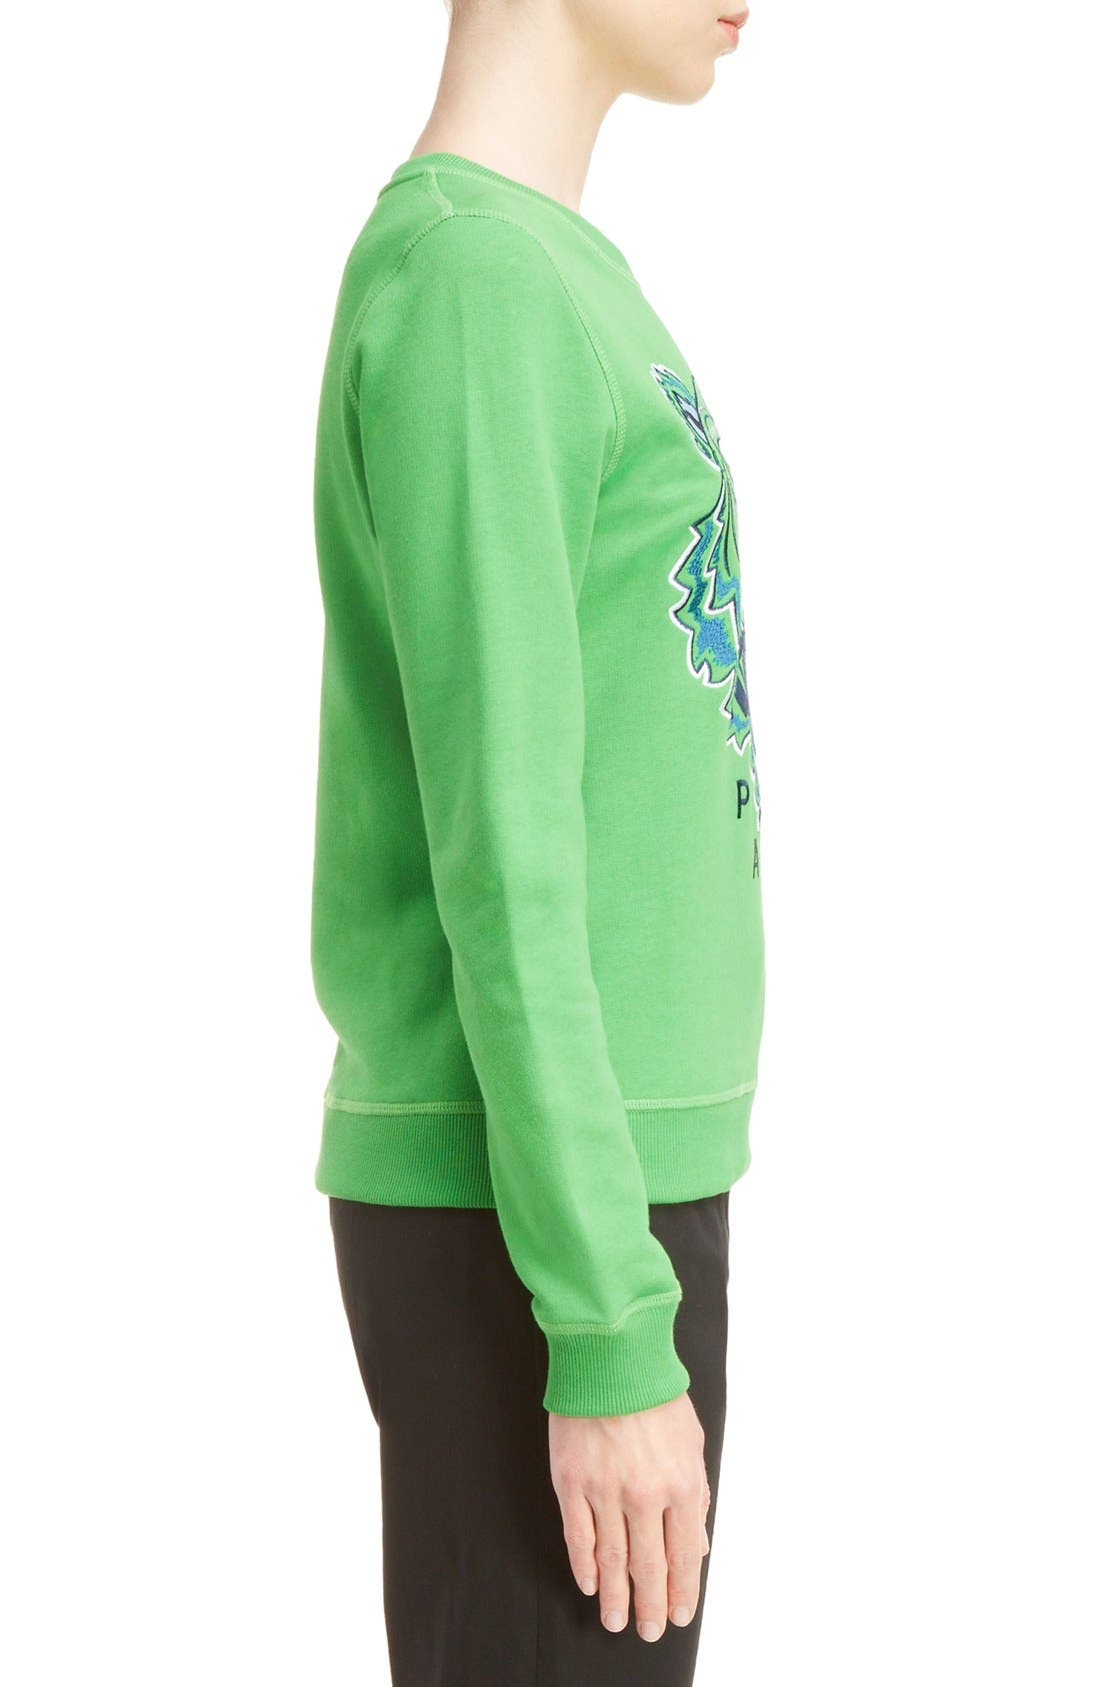 Embroidered Tiger Cotton Sweatshirt,                             Alternate thumbnail 3, color,                             Grass Green